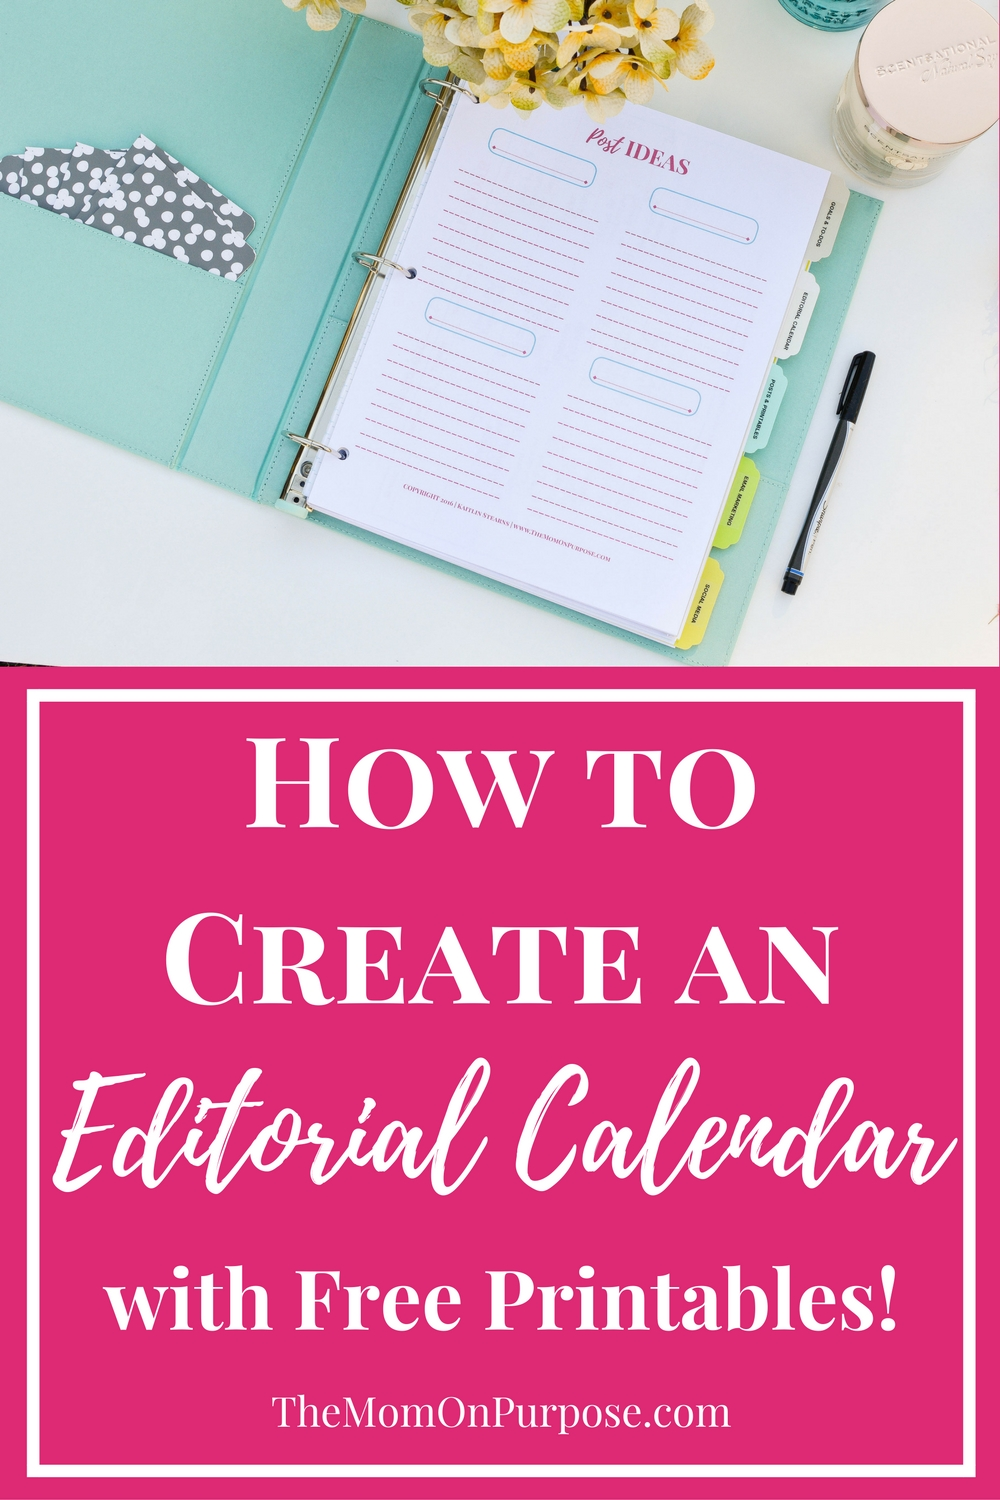 How To Create An Editorial Calendar {With Free Printables